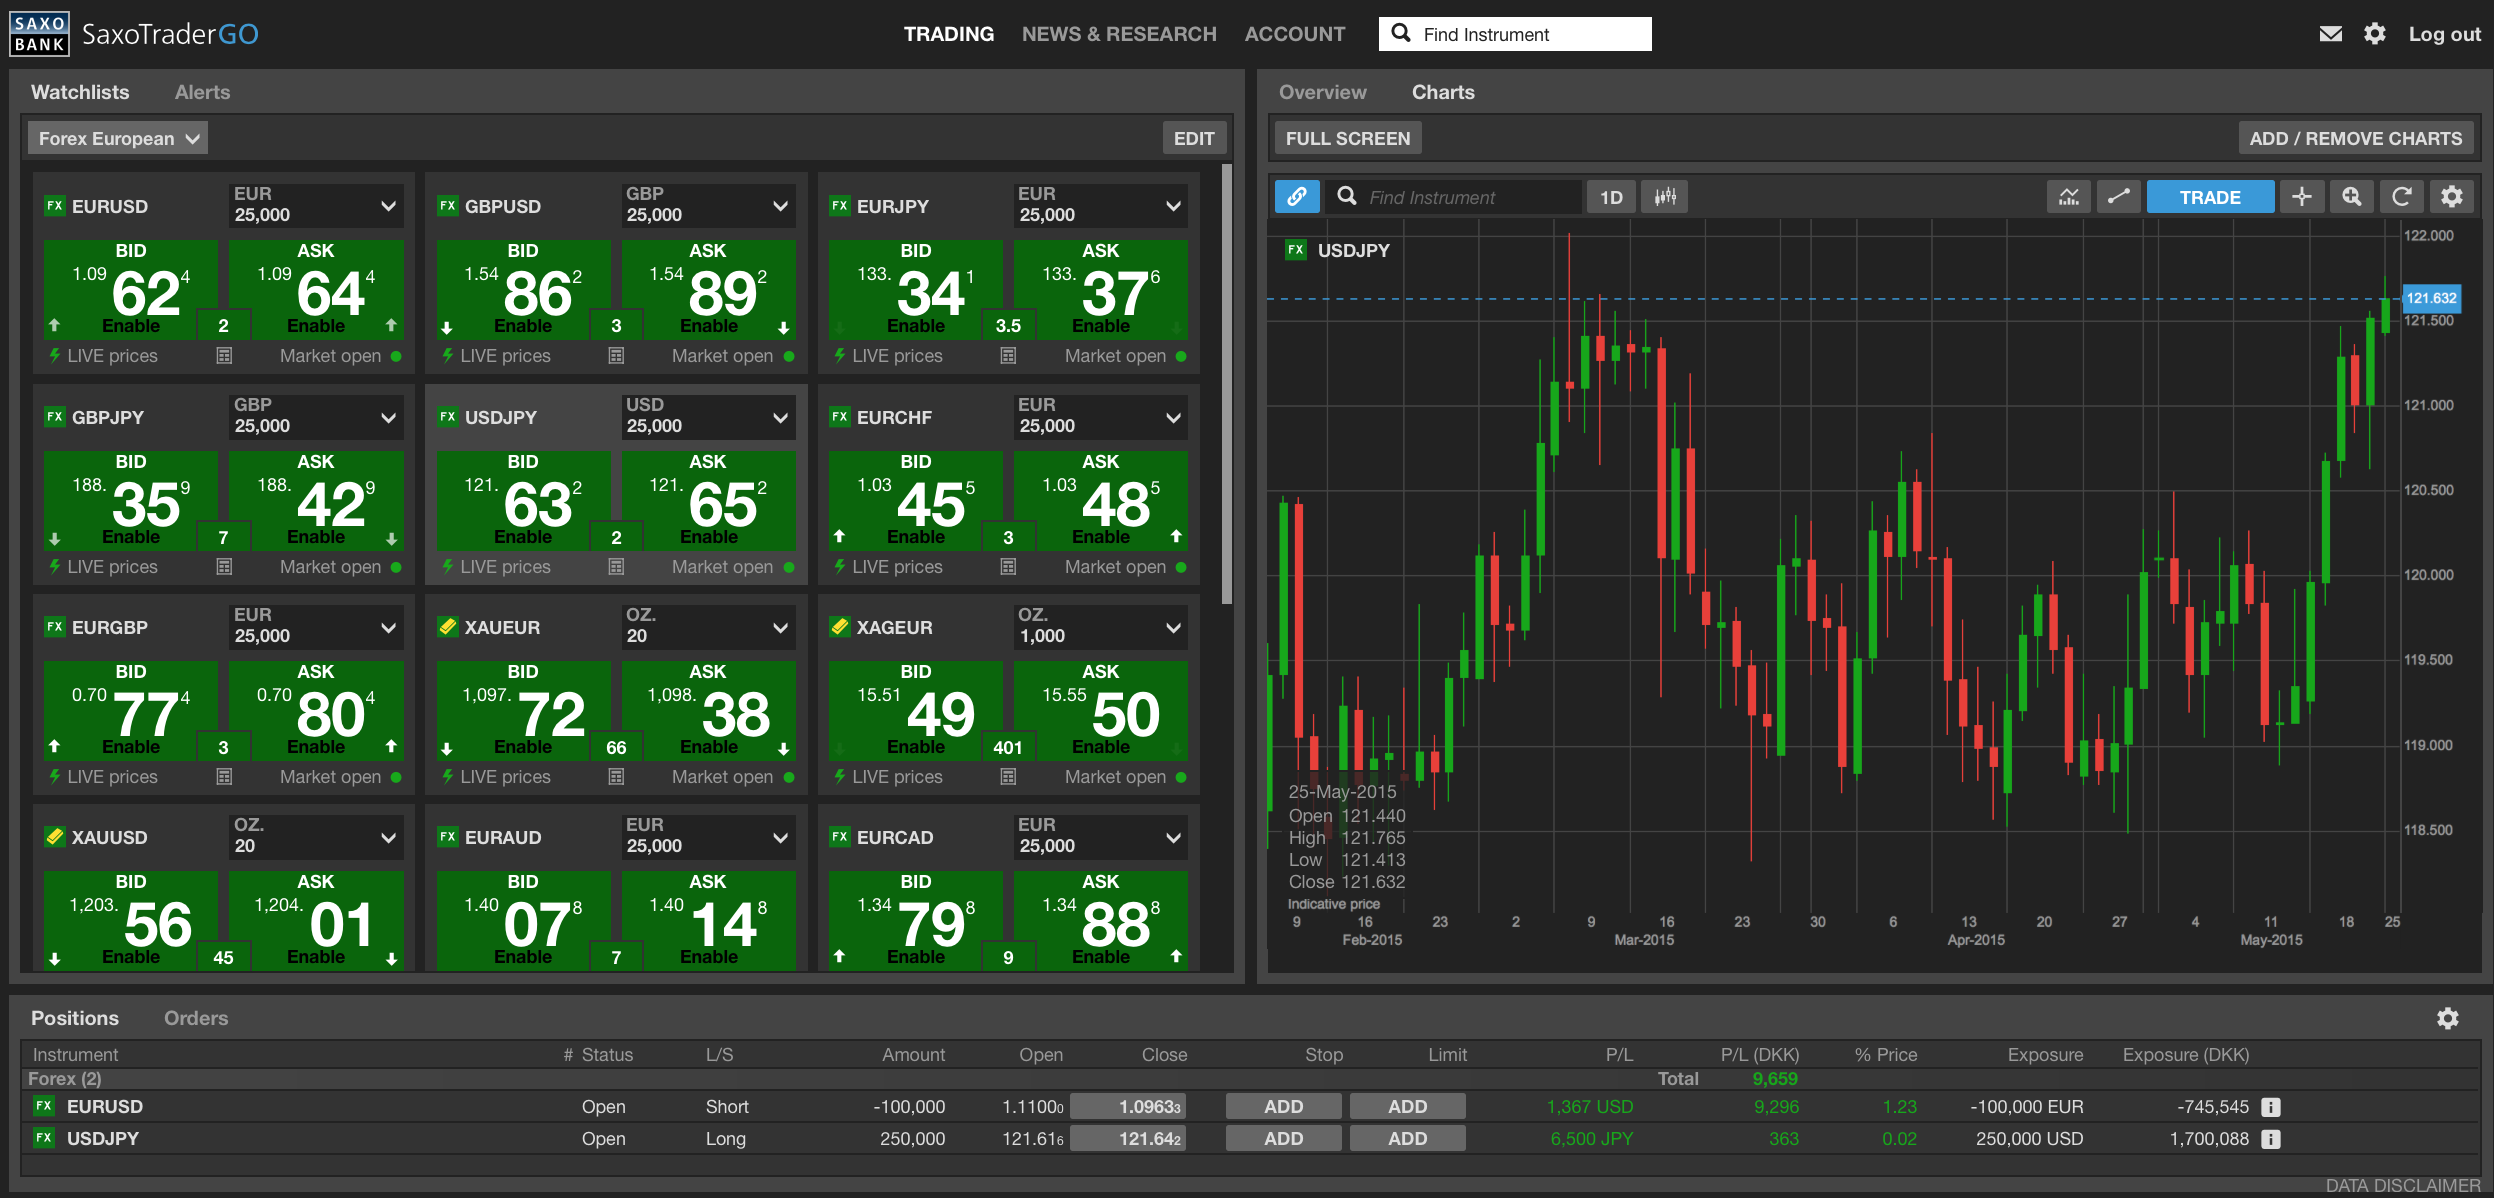 Green forex trading review of windows